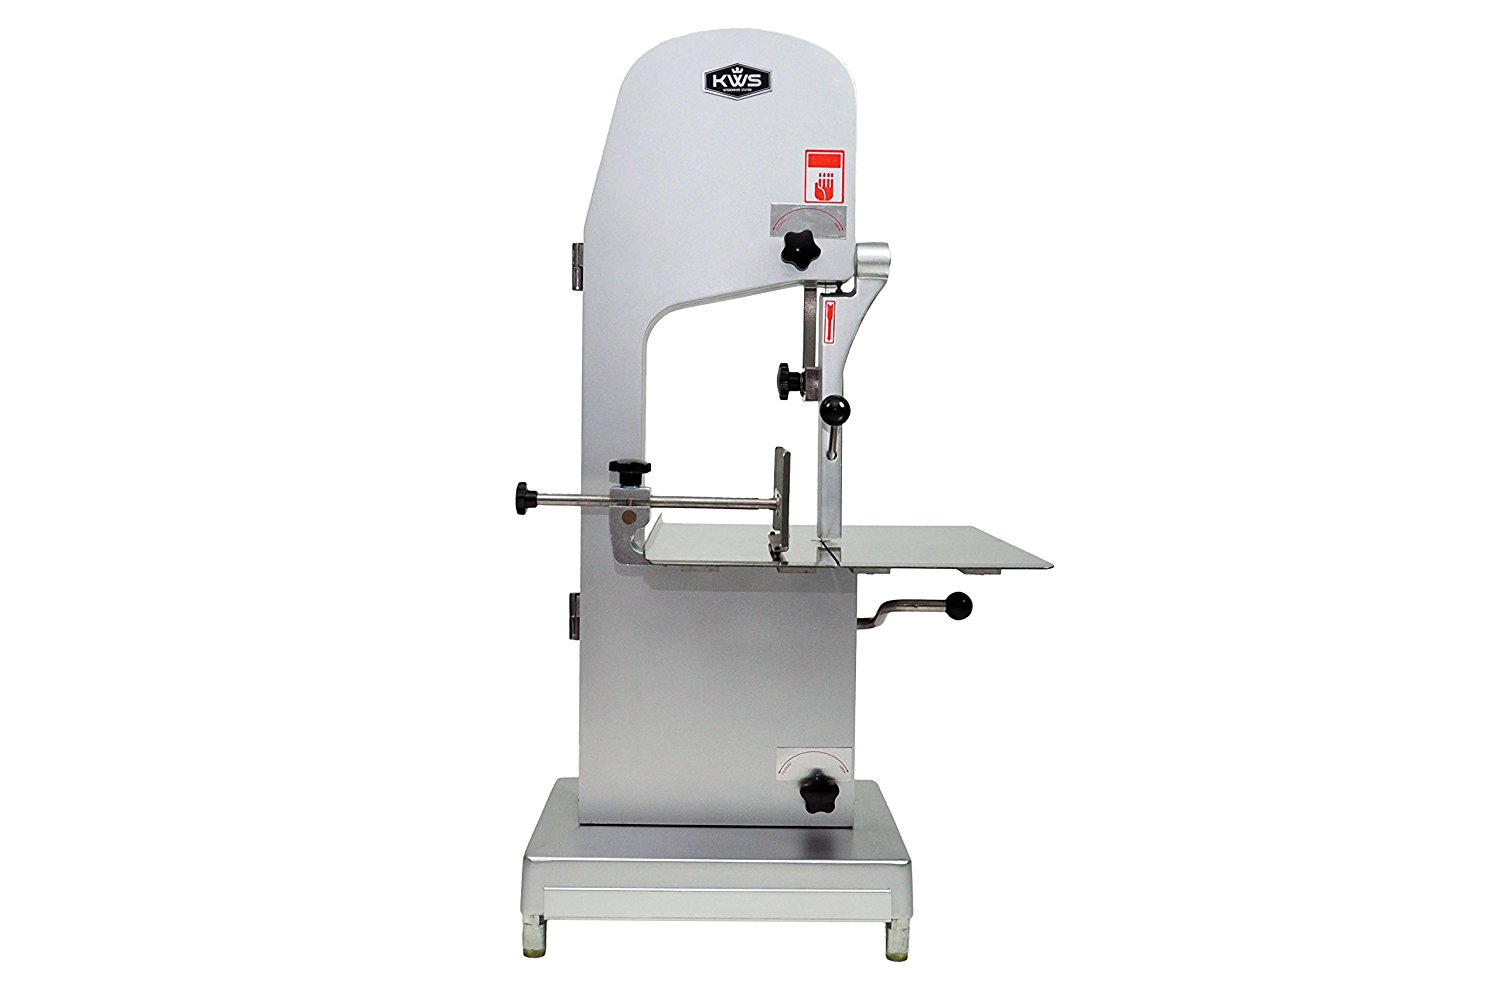 KWS B-310 Commercial 3800W 5HP Electric Meat Band Saw Bone Sawing Machine  Slicer Heavy-Duty by KitchenWare Station